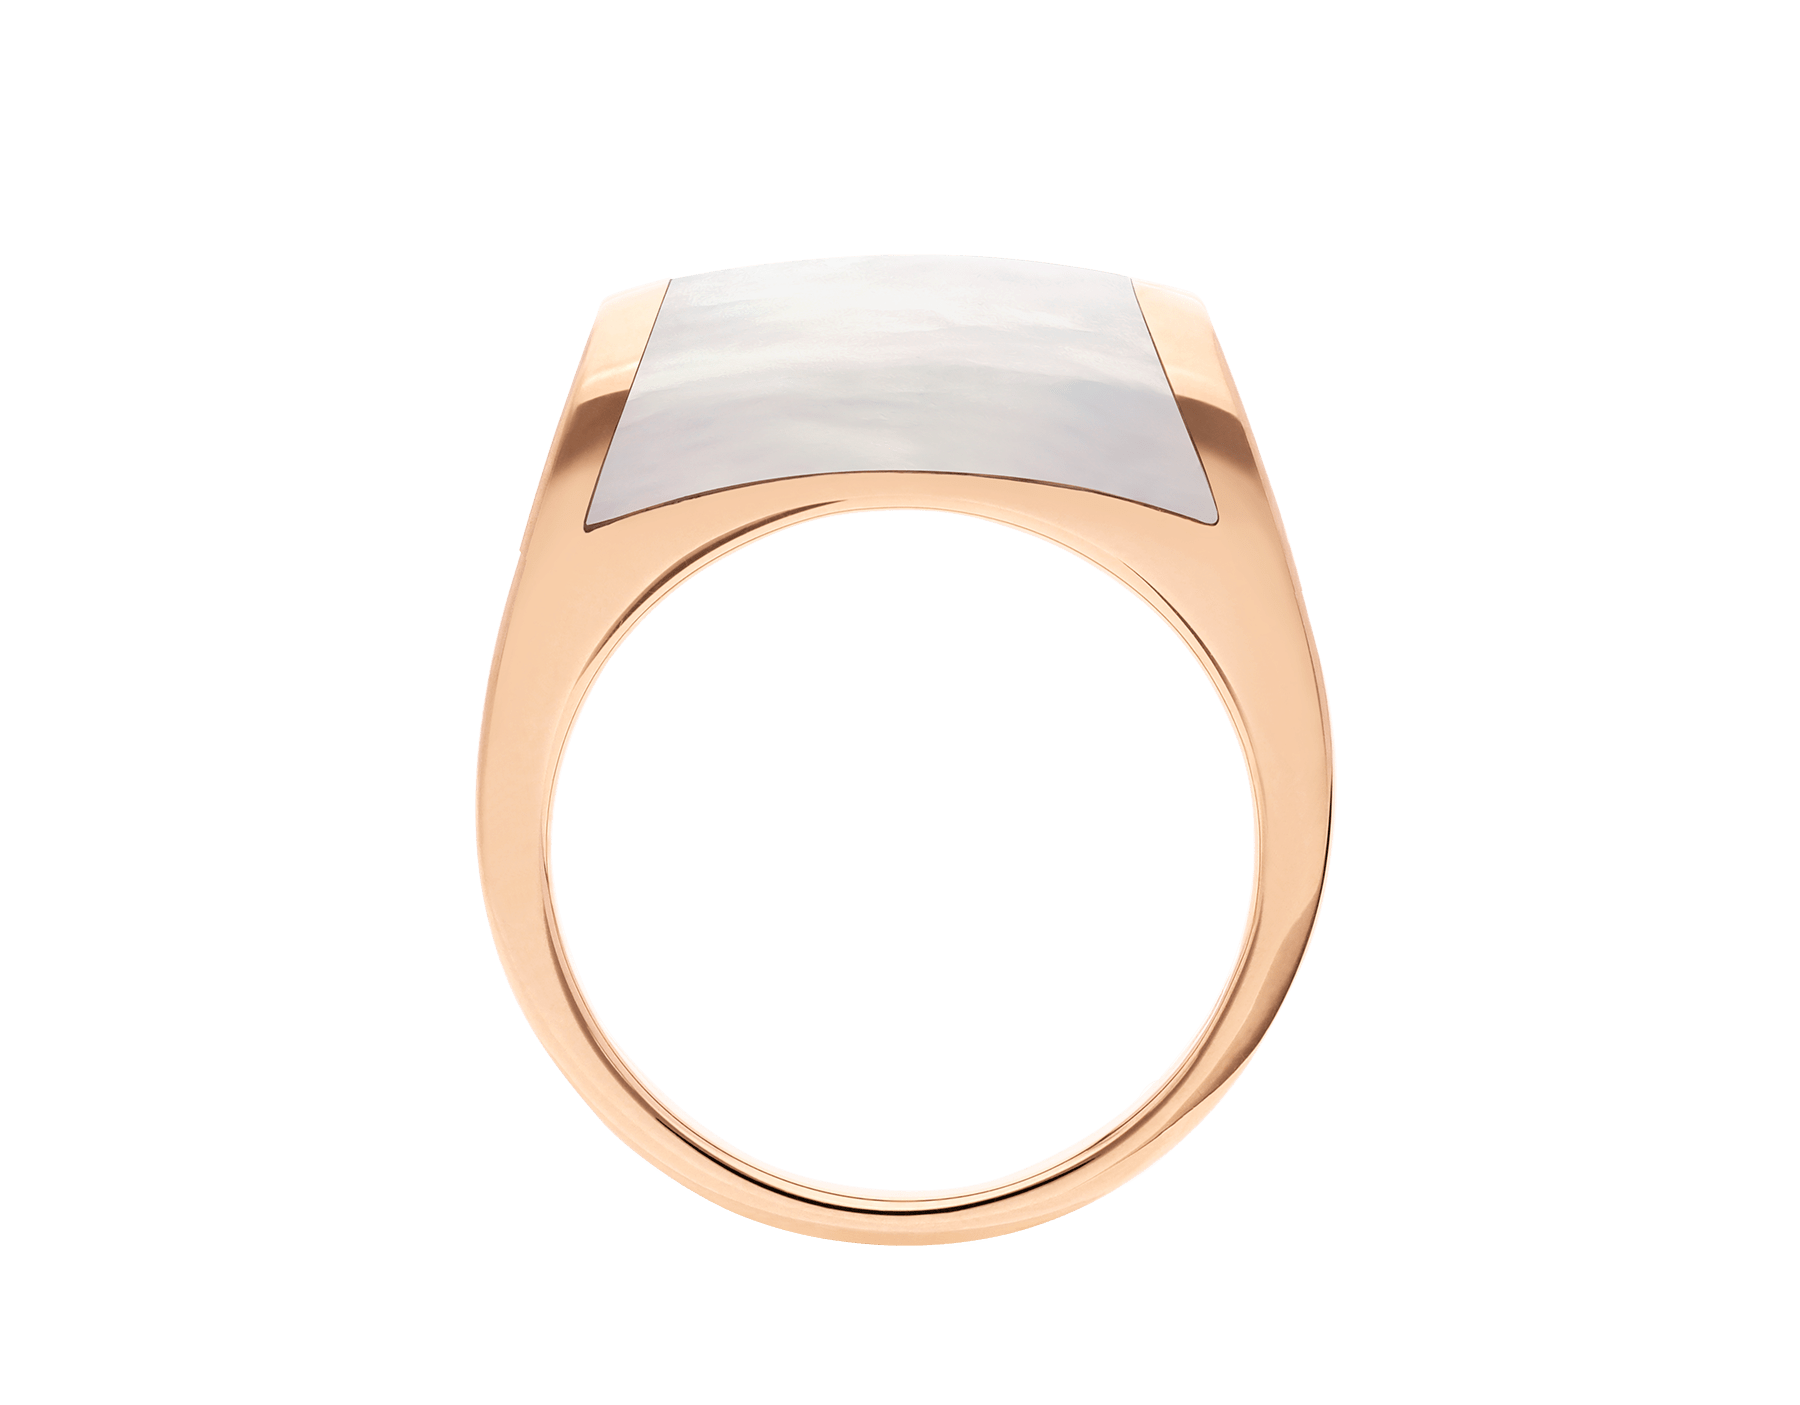 Bague MVSA en or rose 18 K sertie de nacre. AN857860 image 2